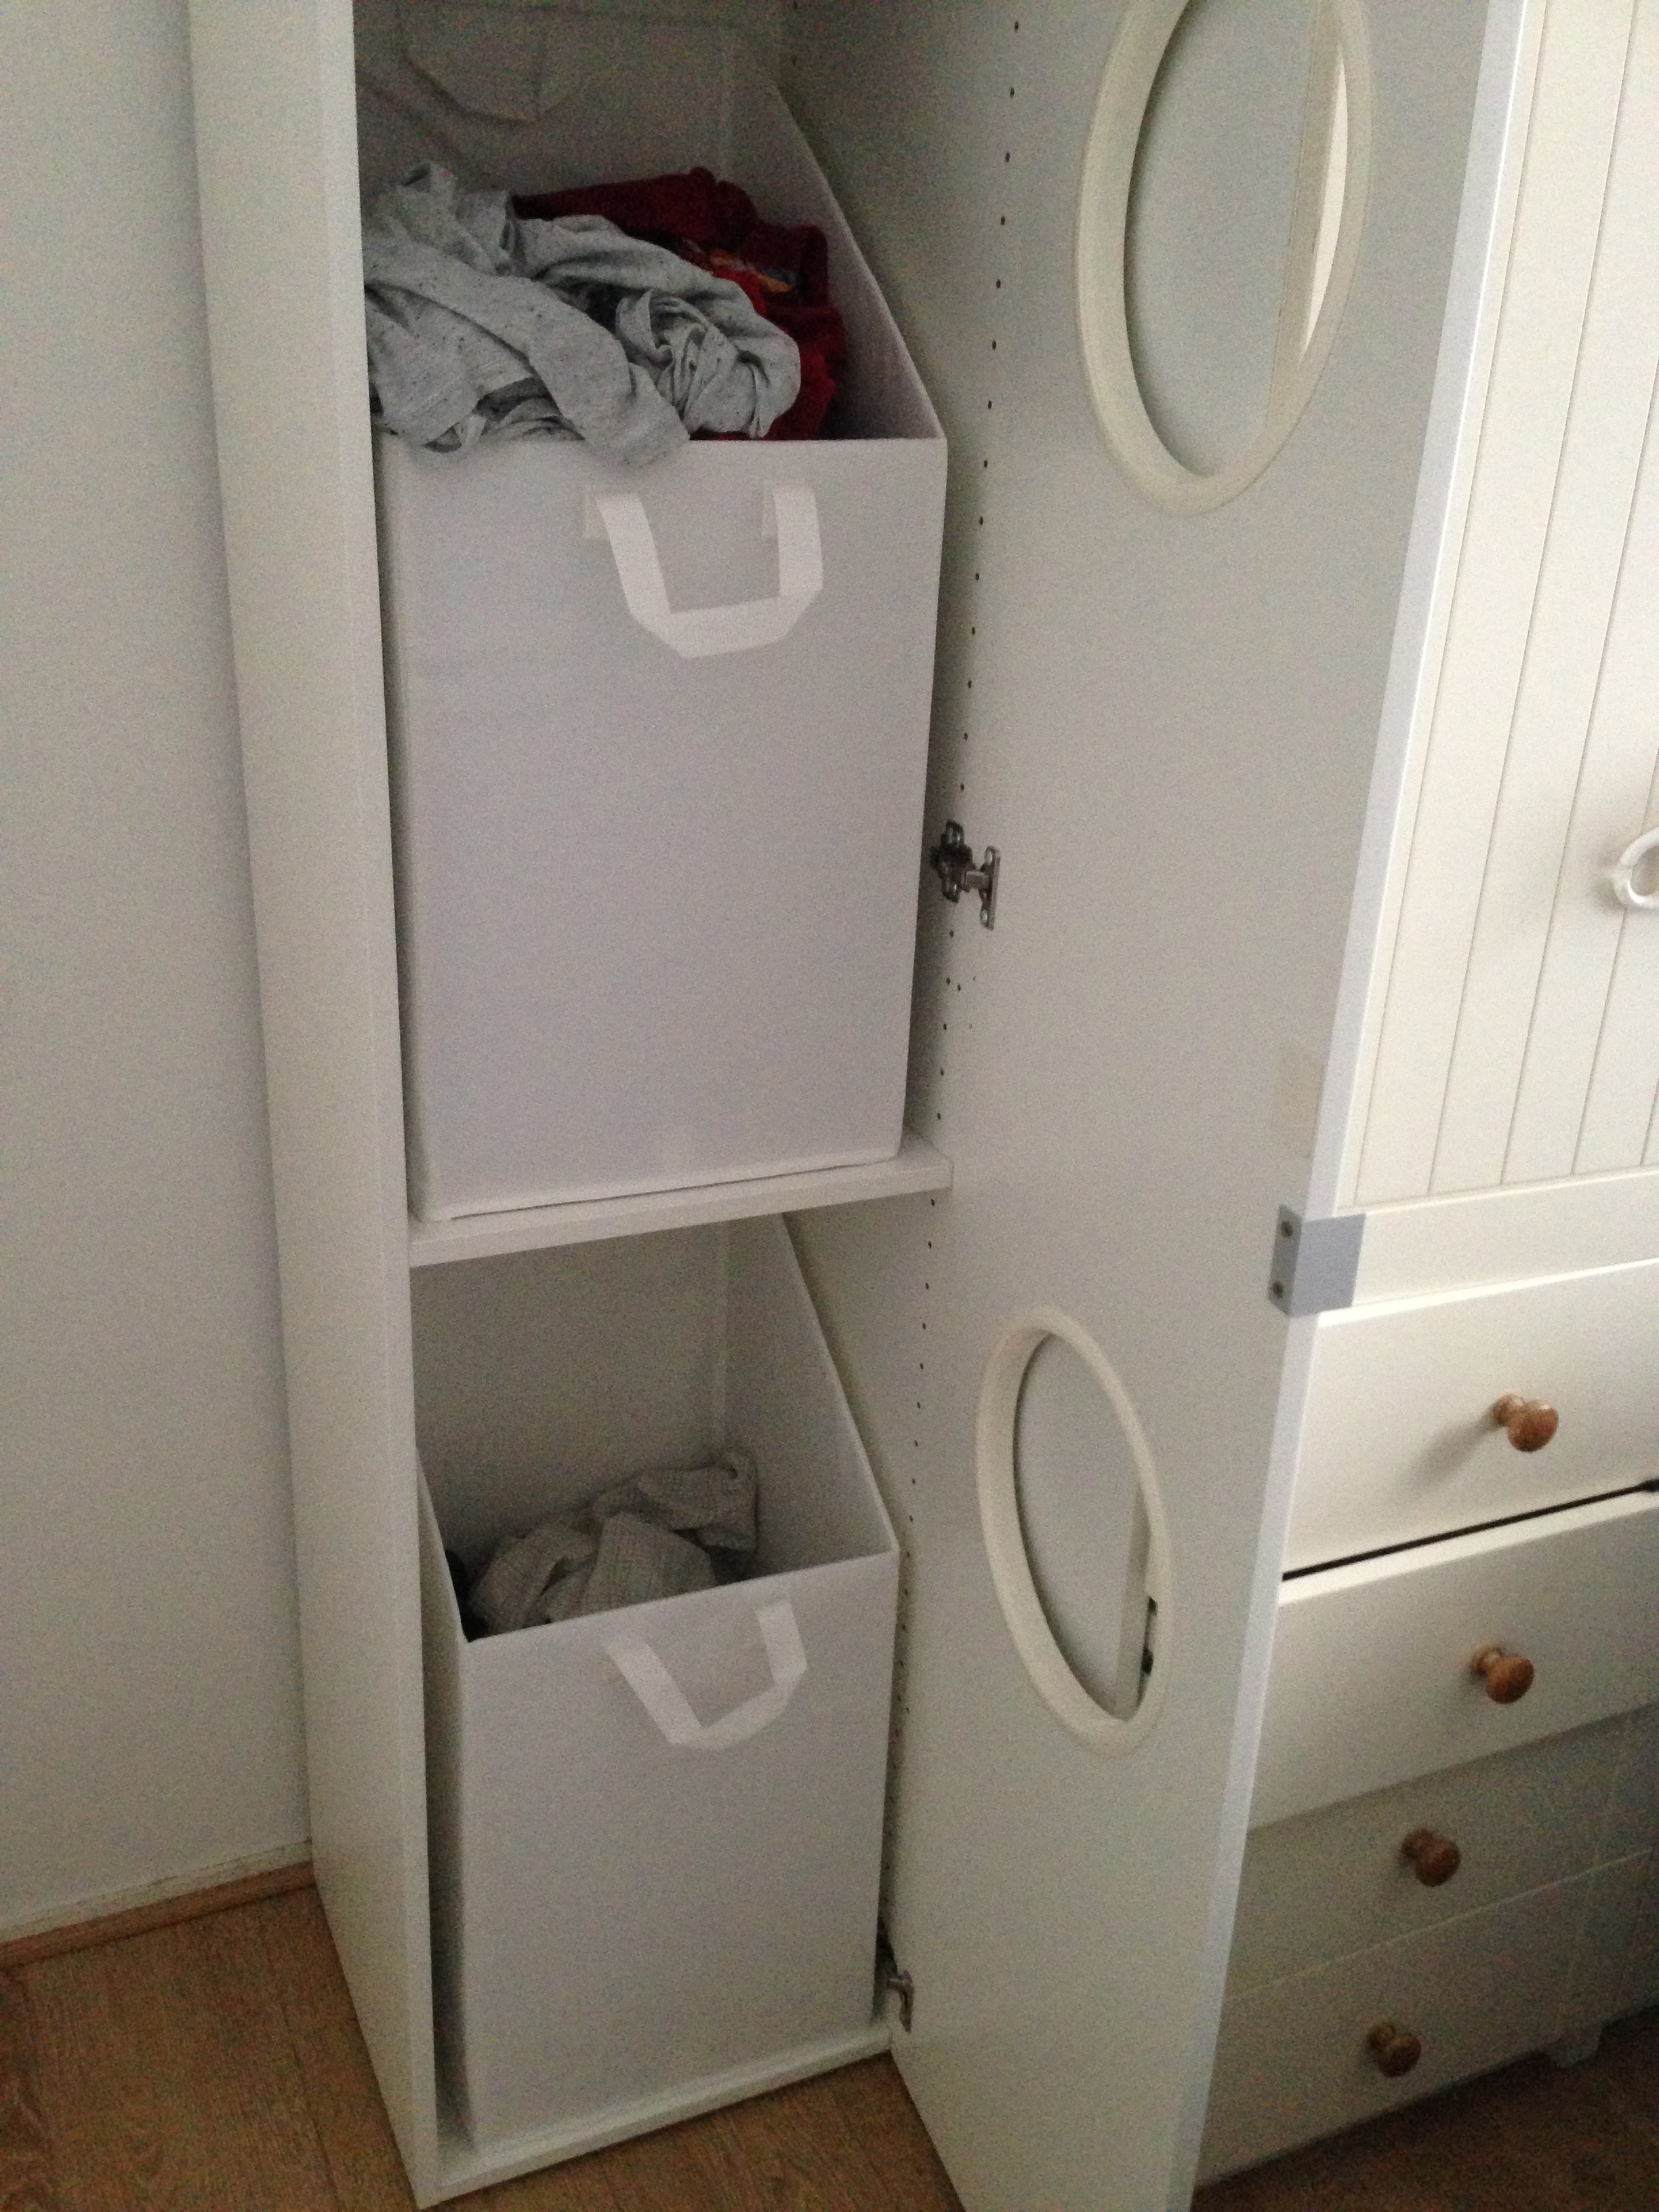 La Trouvaille Ikea De Right Un Meuble Linge Sale Ludique  # Meubles Linge Sale